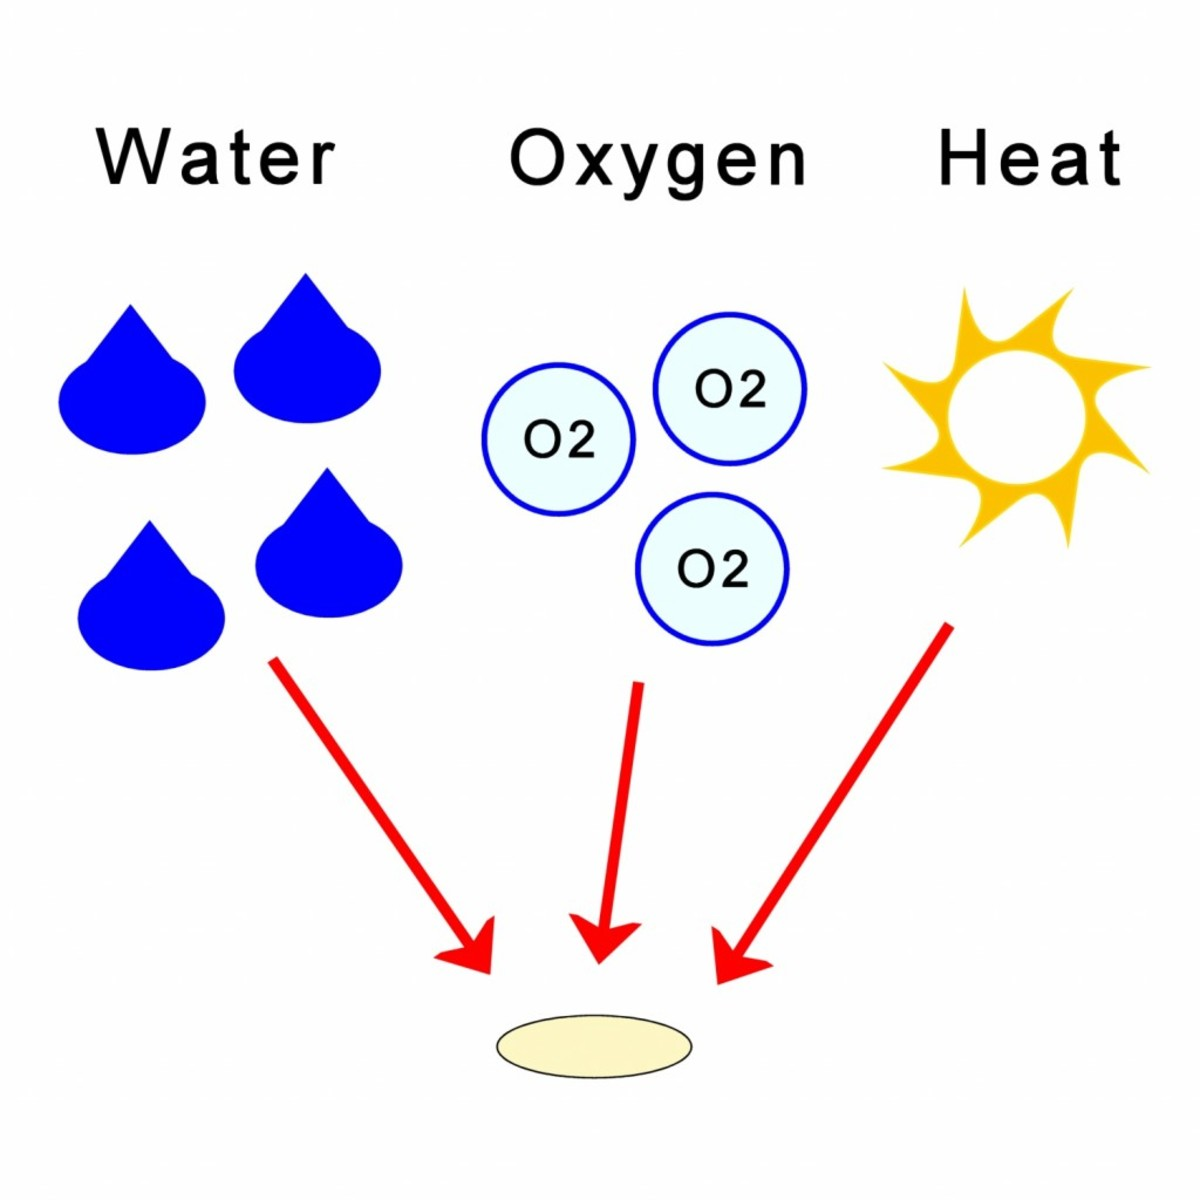 A seed contains information in the form of a chemical called DNA. This tells the seed how to grow. Seeds need oxygen, water and heat so that they can germinate and start to grow.